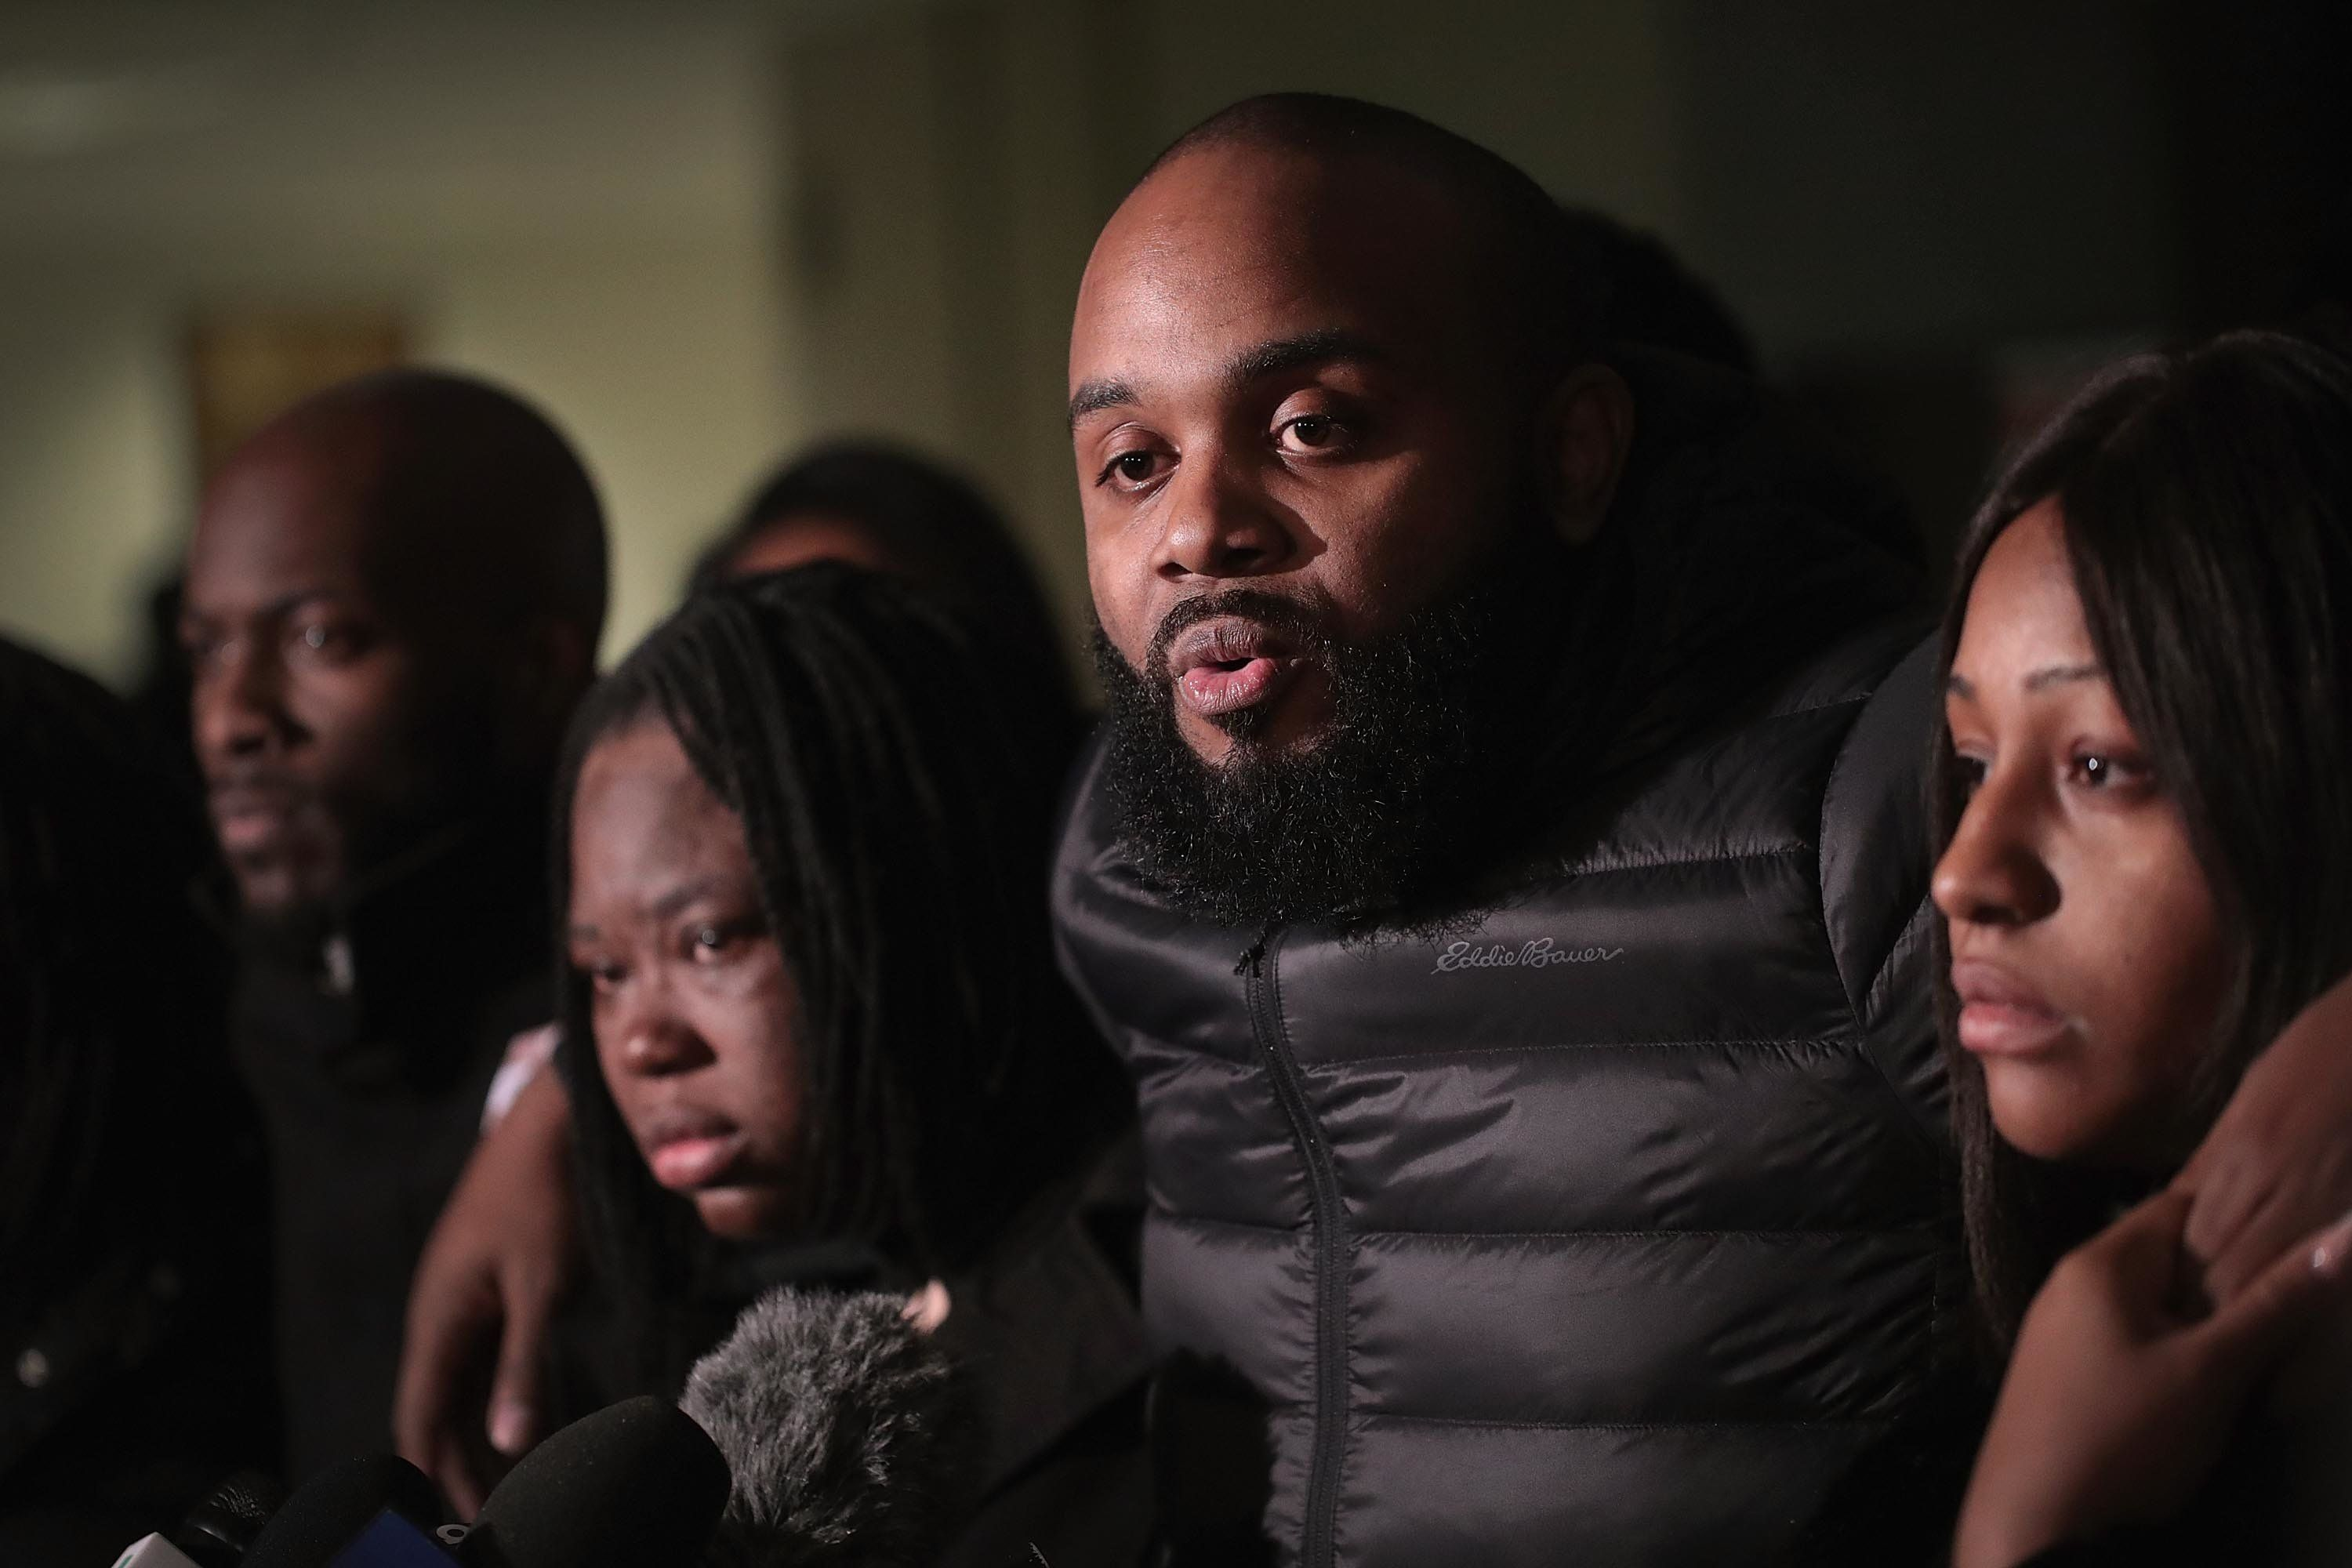 CHICAGO, ILLINOIS - JANUARY 18: Community activist Will Calloway speaks to the press following the sentencing hearing for former Chicago police officer Jason Van Dyke at the Leighton Criminal Courthouse for the 2014 murder of 17-year-old Laquan McDonald on January 18, 2019 in Chicago, Illinois. Van Dyke was sentenced to 81 months in prison.  (Photo by Scott Olson/Getty Images)